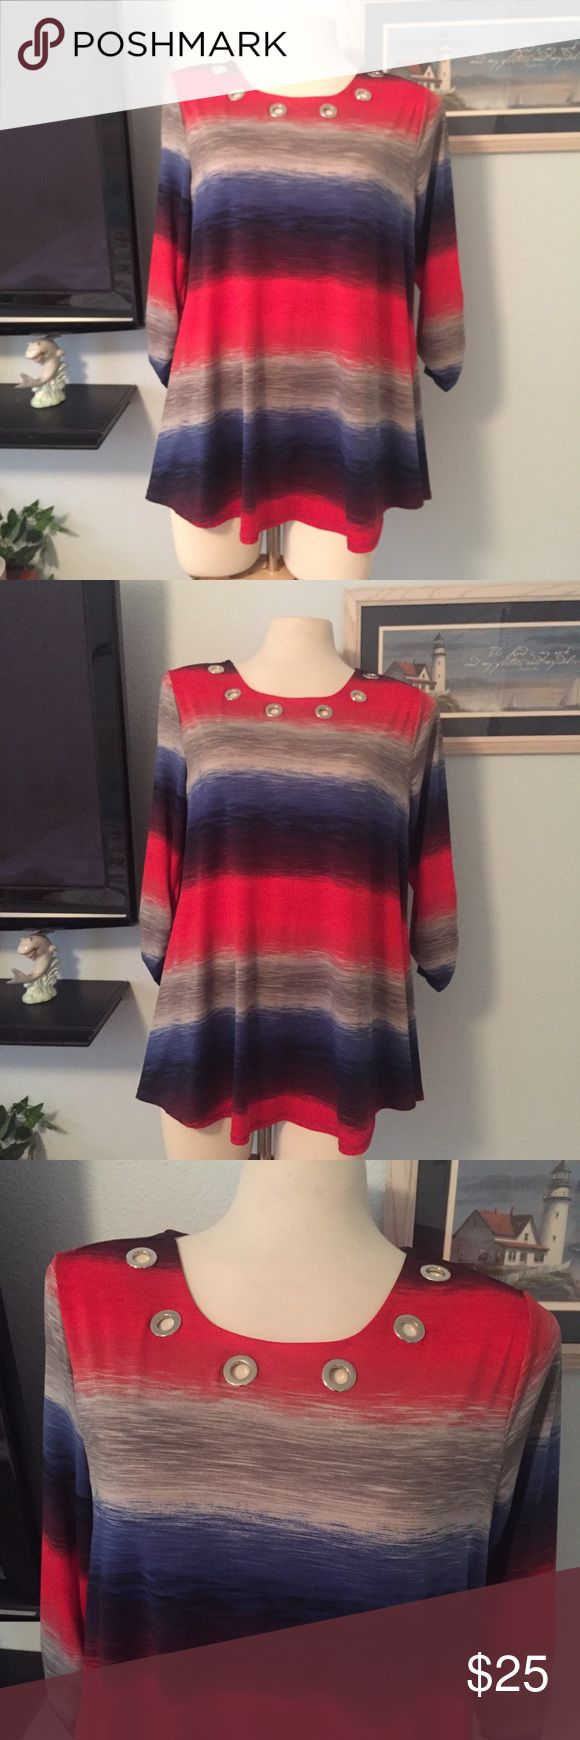 """NWT New Direction Comfy Top Size Large NWT Ladies New Direction """"Denim-Red Knit"""" Comfy Top in a Size Large. 95% Polyester & 5% Spandex. Laying flat, not stretch 22"""".  Top of the shoulder to hem is 29"""".  Colors are red, denim blue and gray. Would Look great with jeans or dress slacks.?Tag price $45 new directions Tops Tunics"""